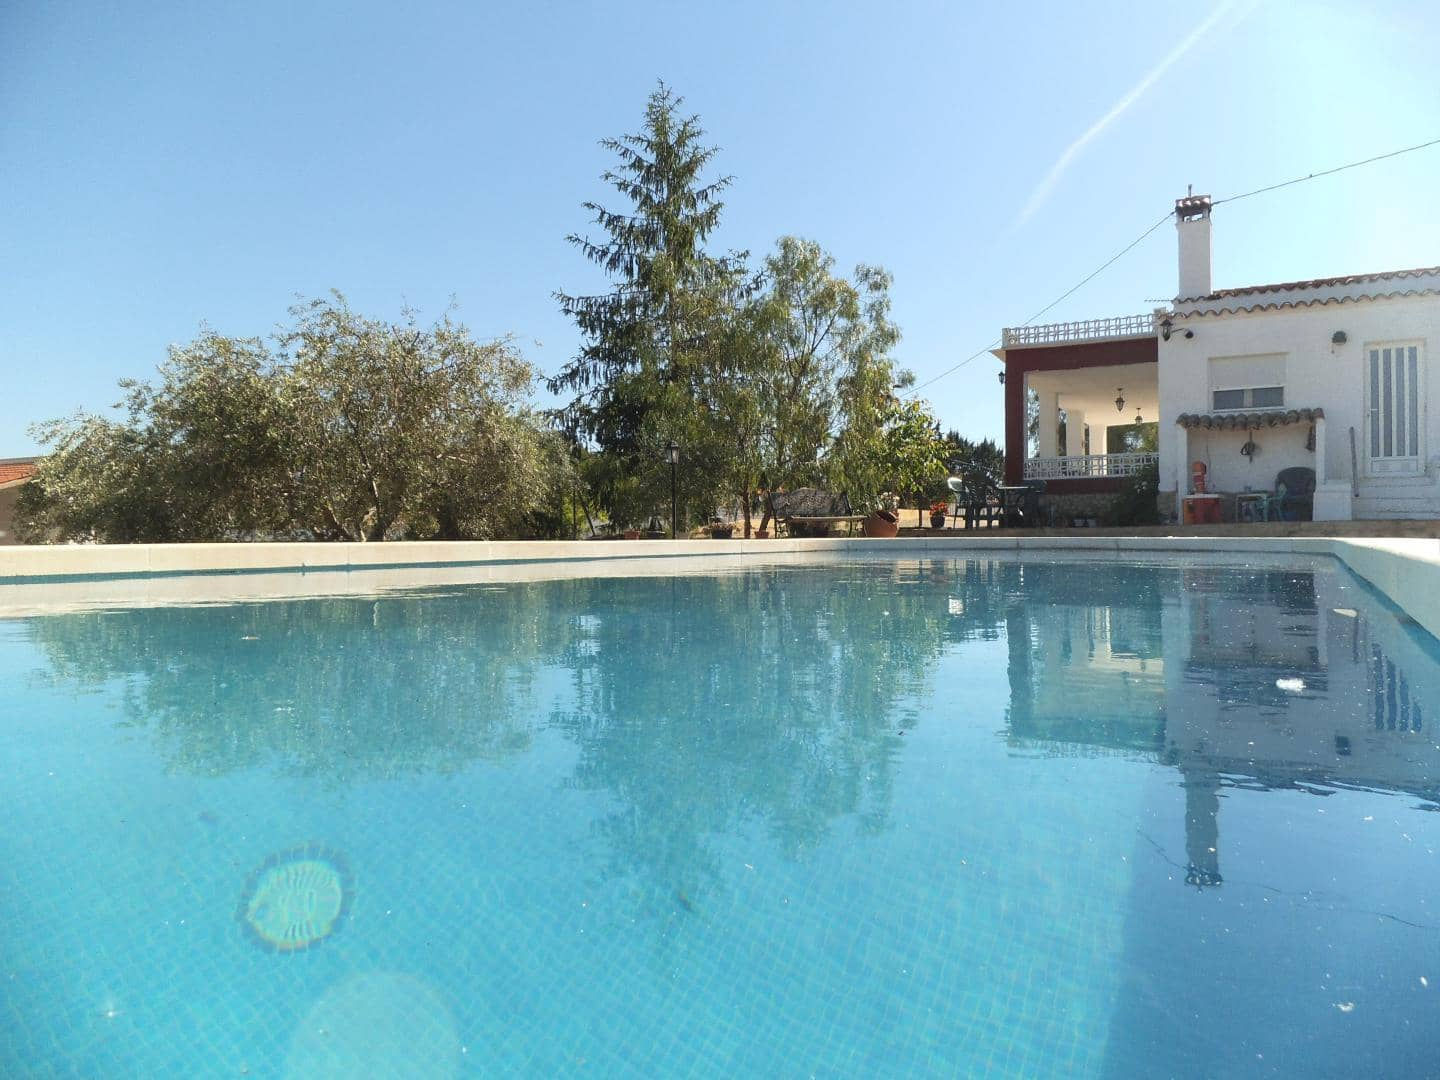 4 bedroom Villa for sale in Ontinyent with pool - € 166,000 (Ref: 5586932)